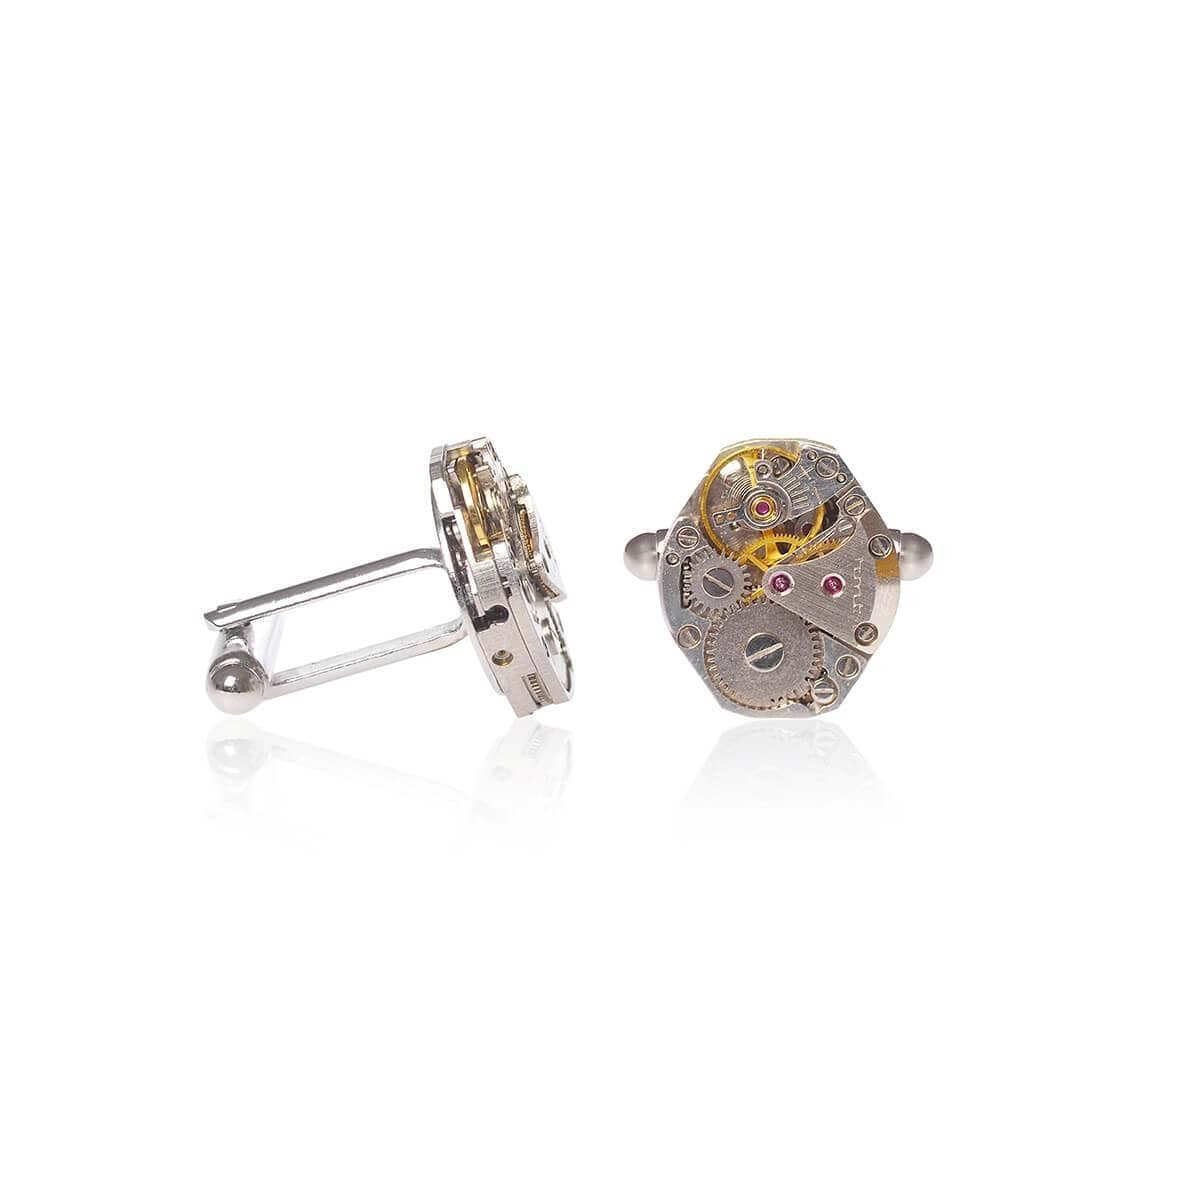 Silver Plated Brass Vintage Classic Watch Movements Cufflinks